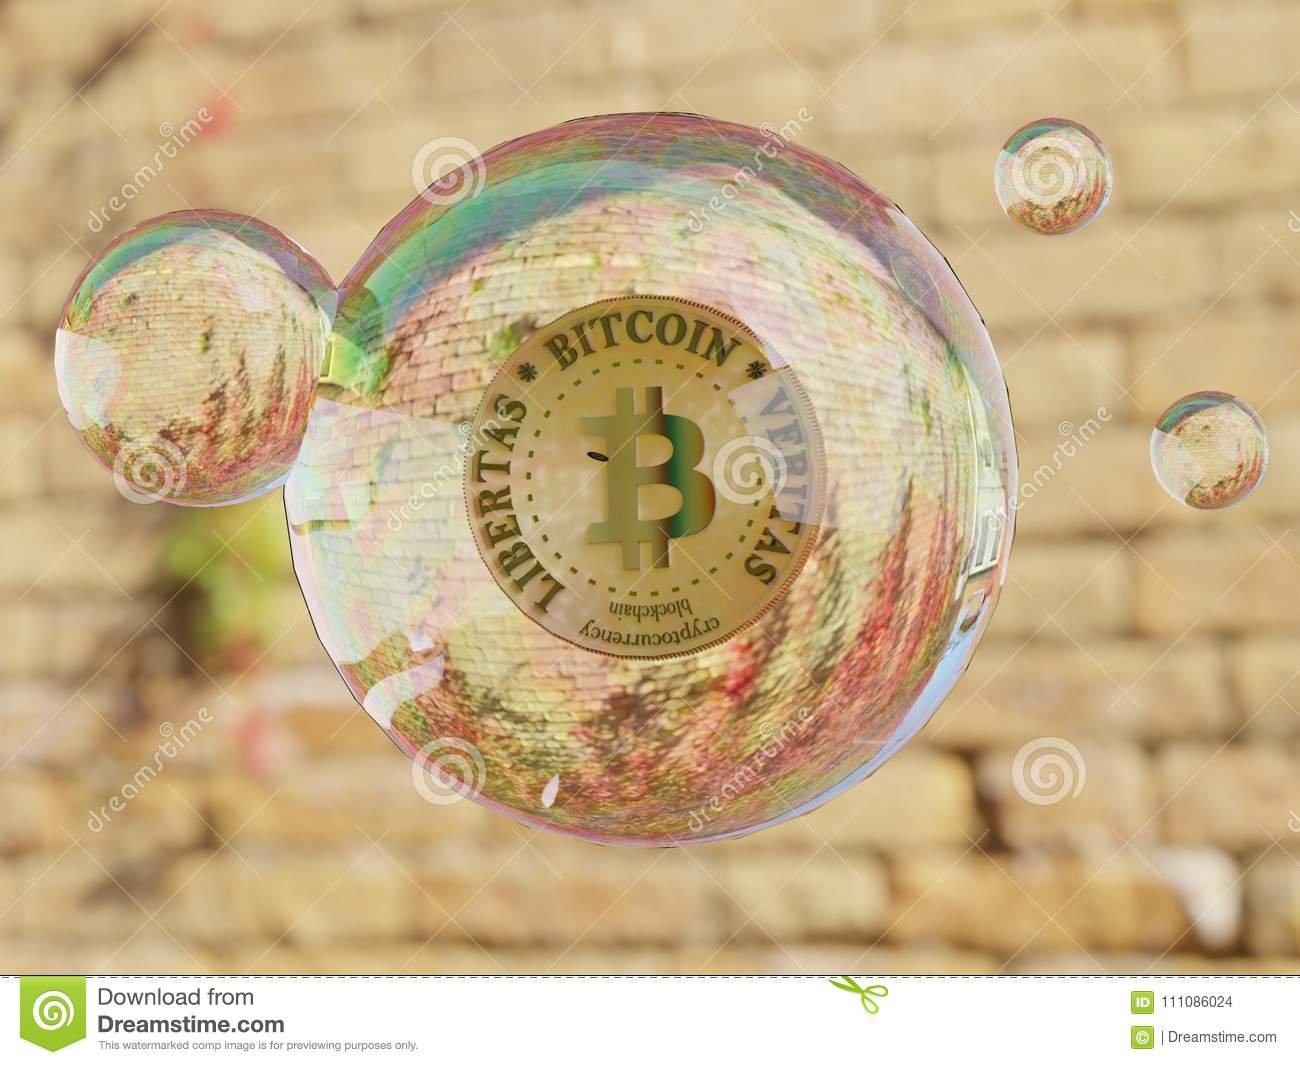 Bitcoin泡影Cryptocurrency